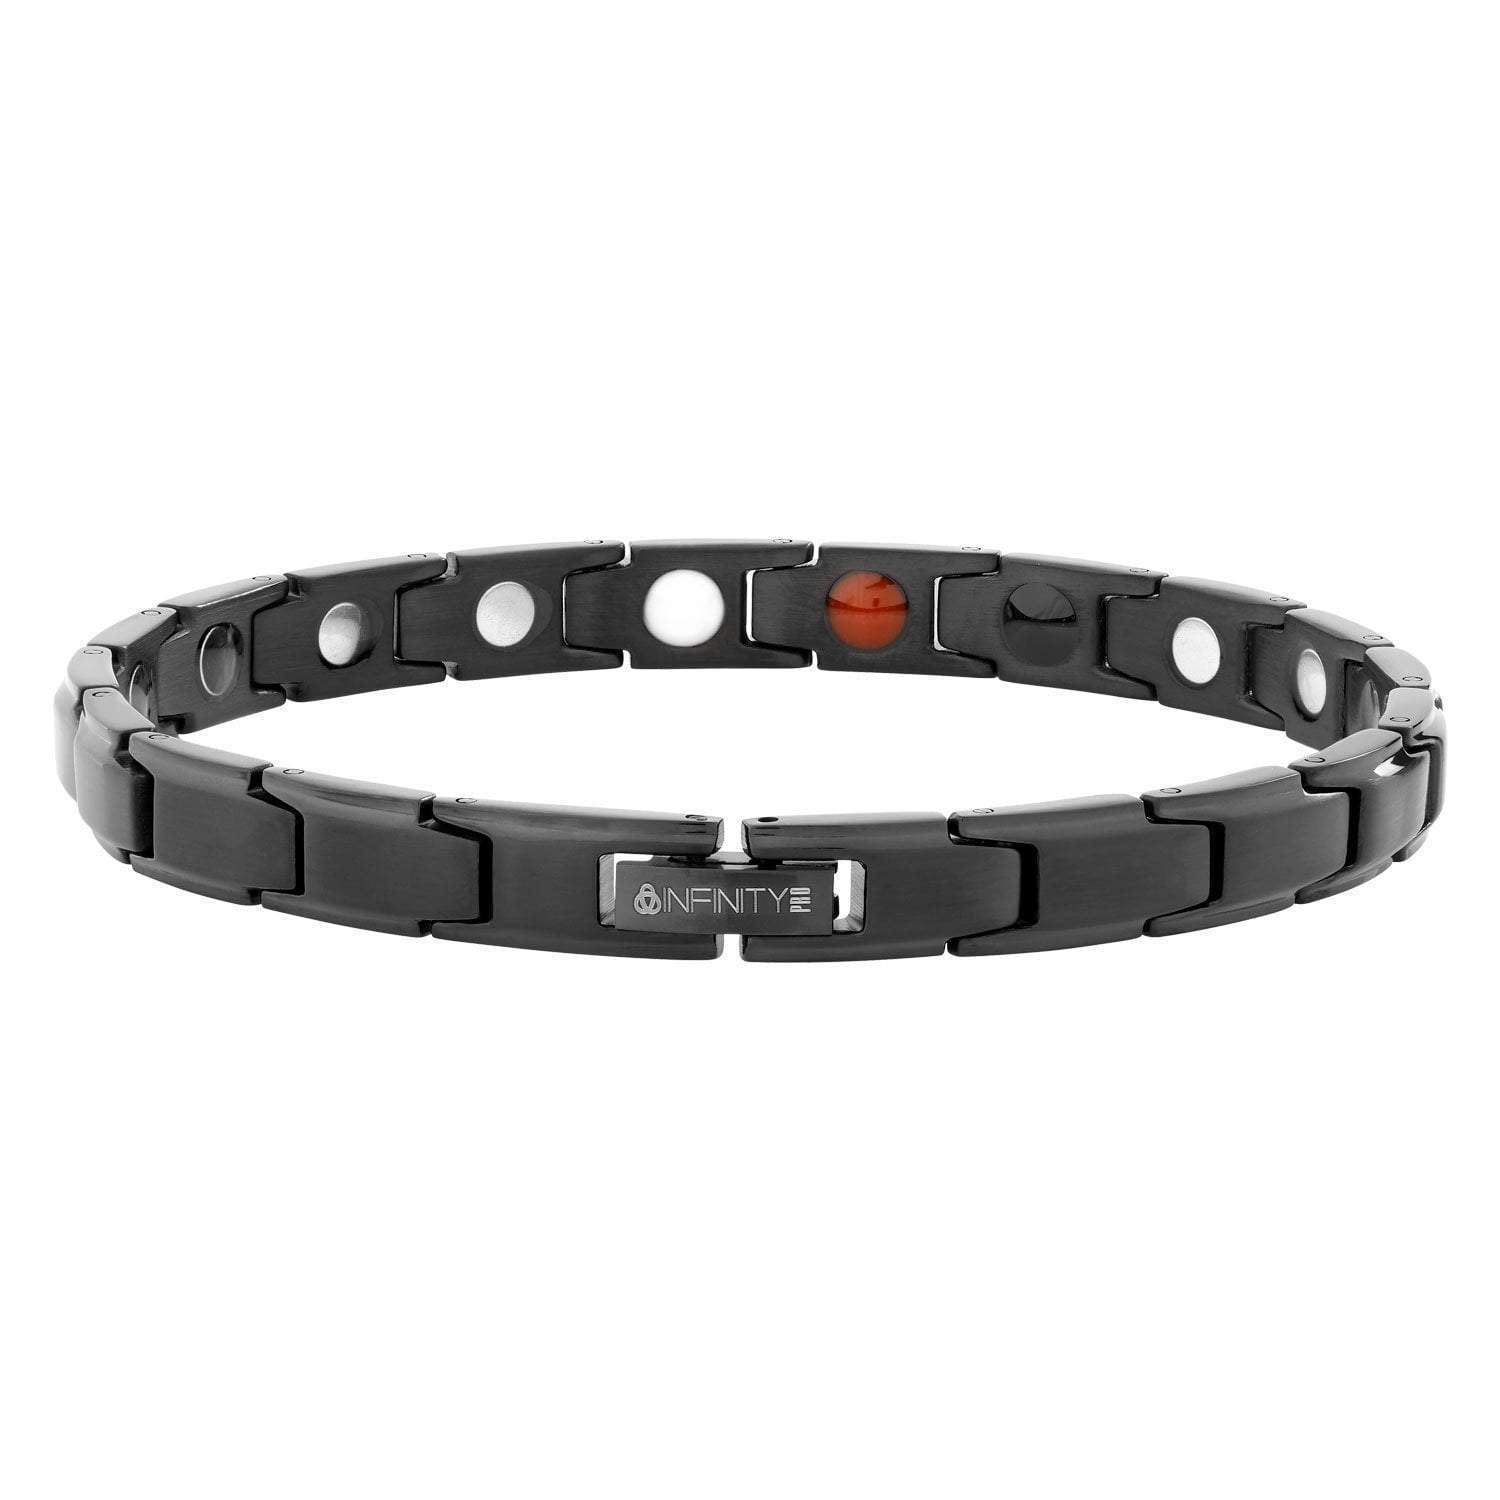 c95bbe2368d65 Infinity Pro - The World s Leading Magnetic Health Bracelet Company